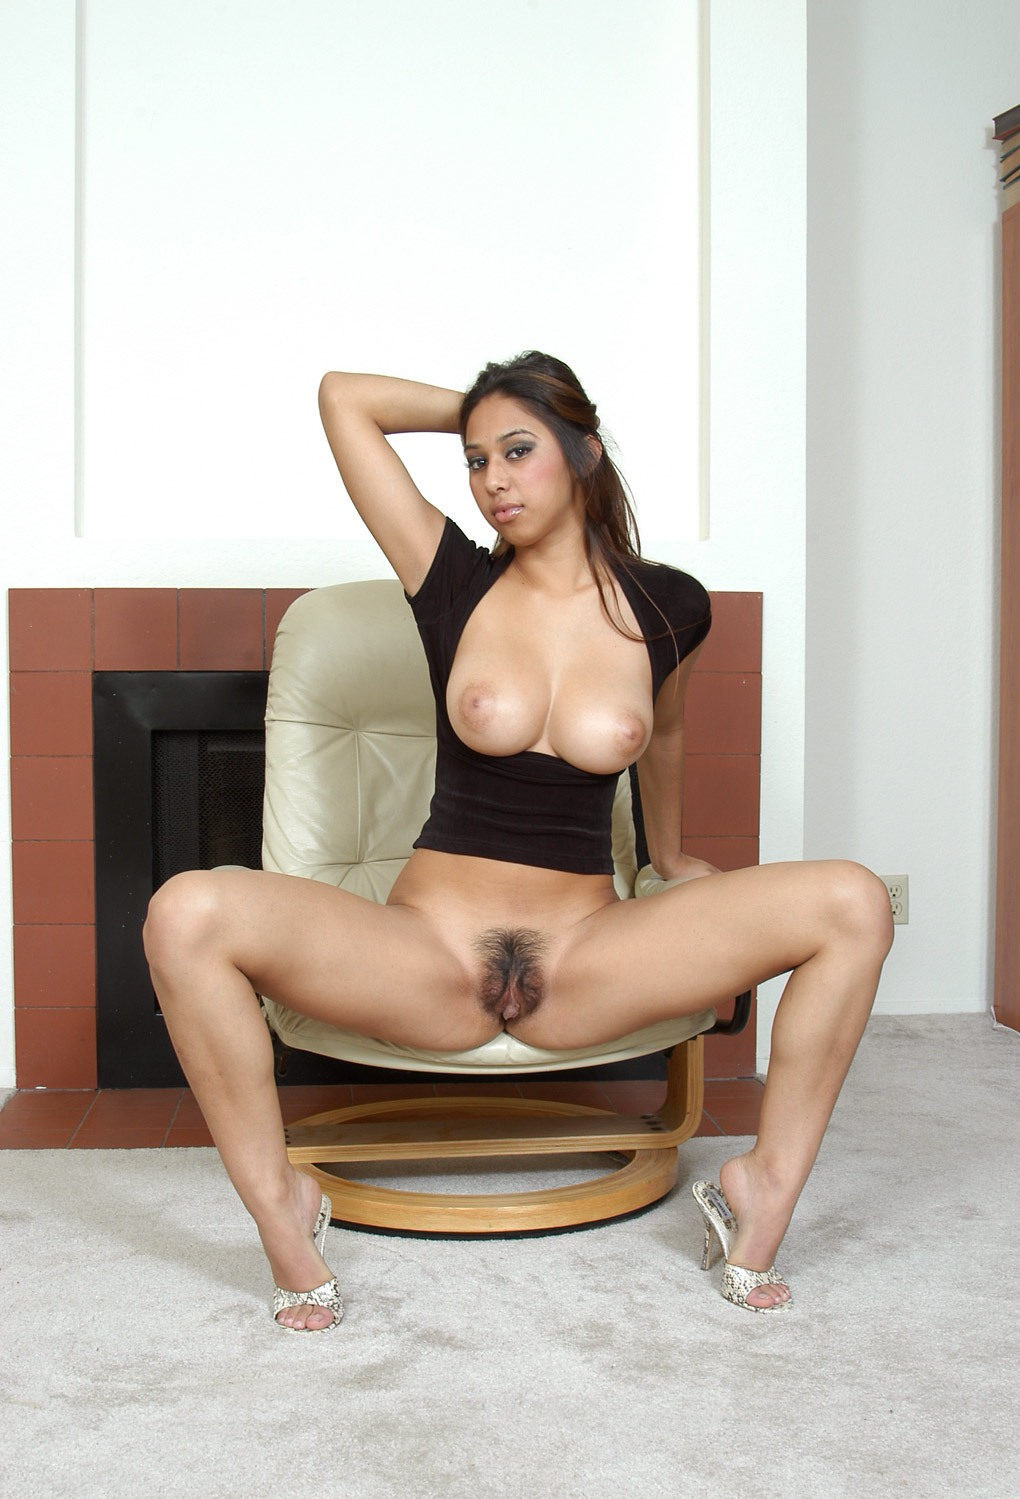 Hairy pussy out panty